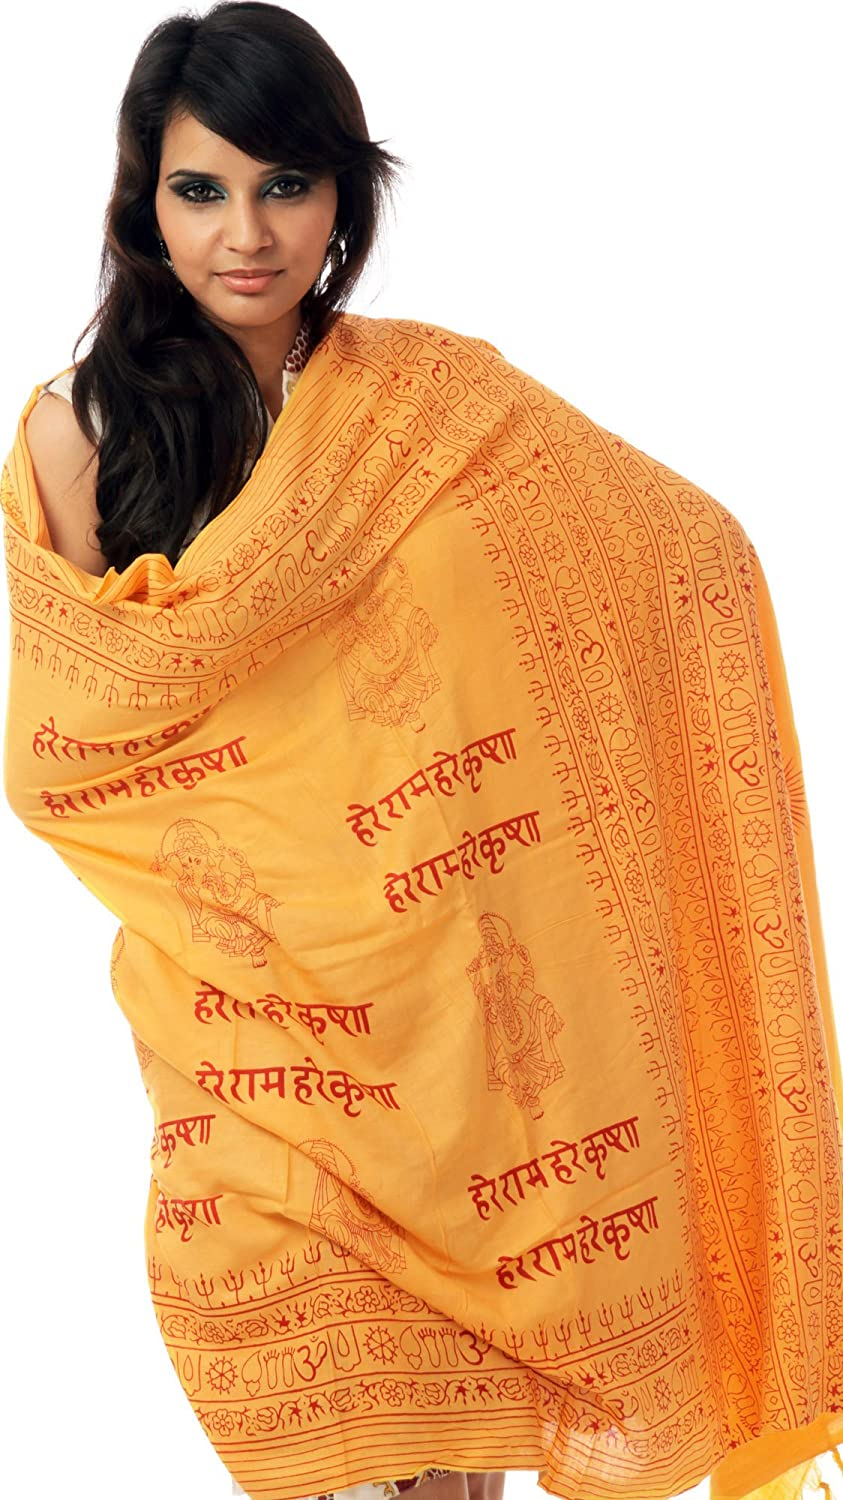 Exotic India Hare Rama Hare Krishna Prayer Shawl with Printed Ganeshas - Yellow SRA93